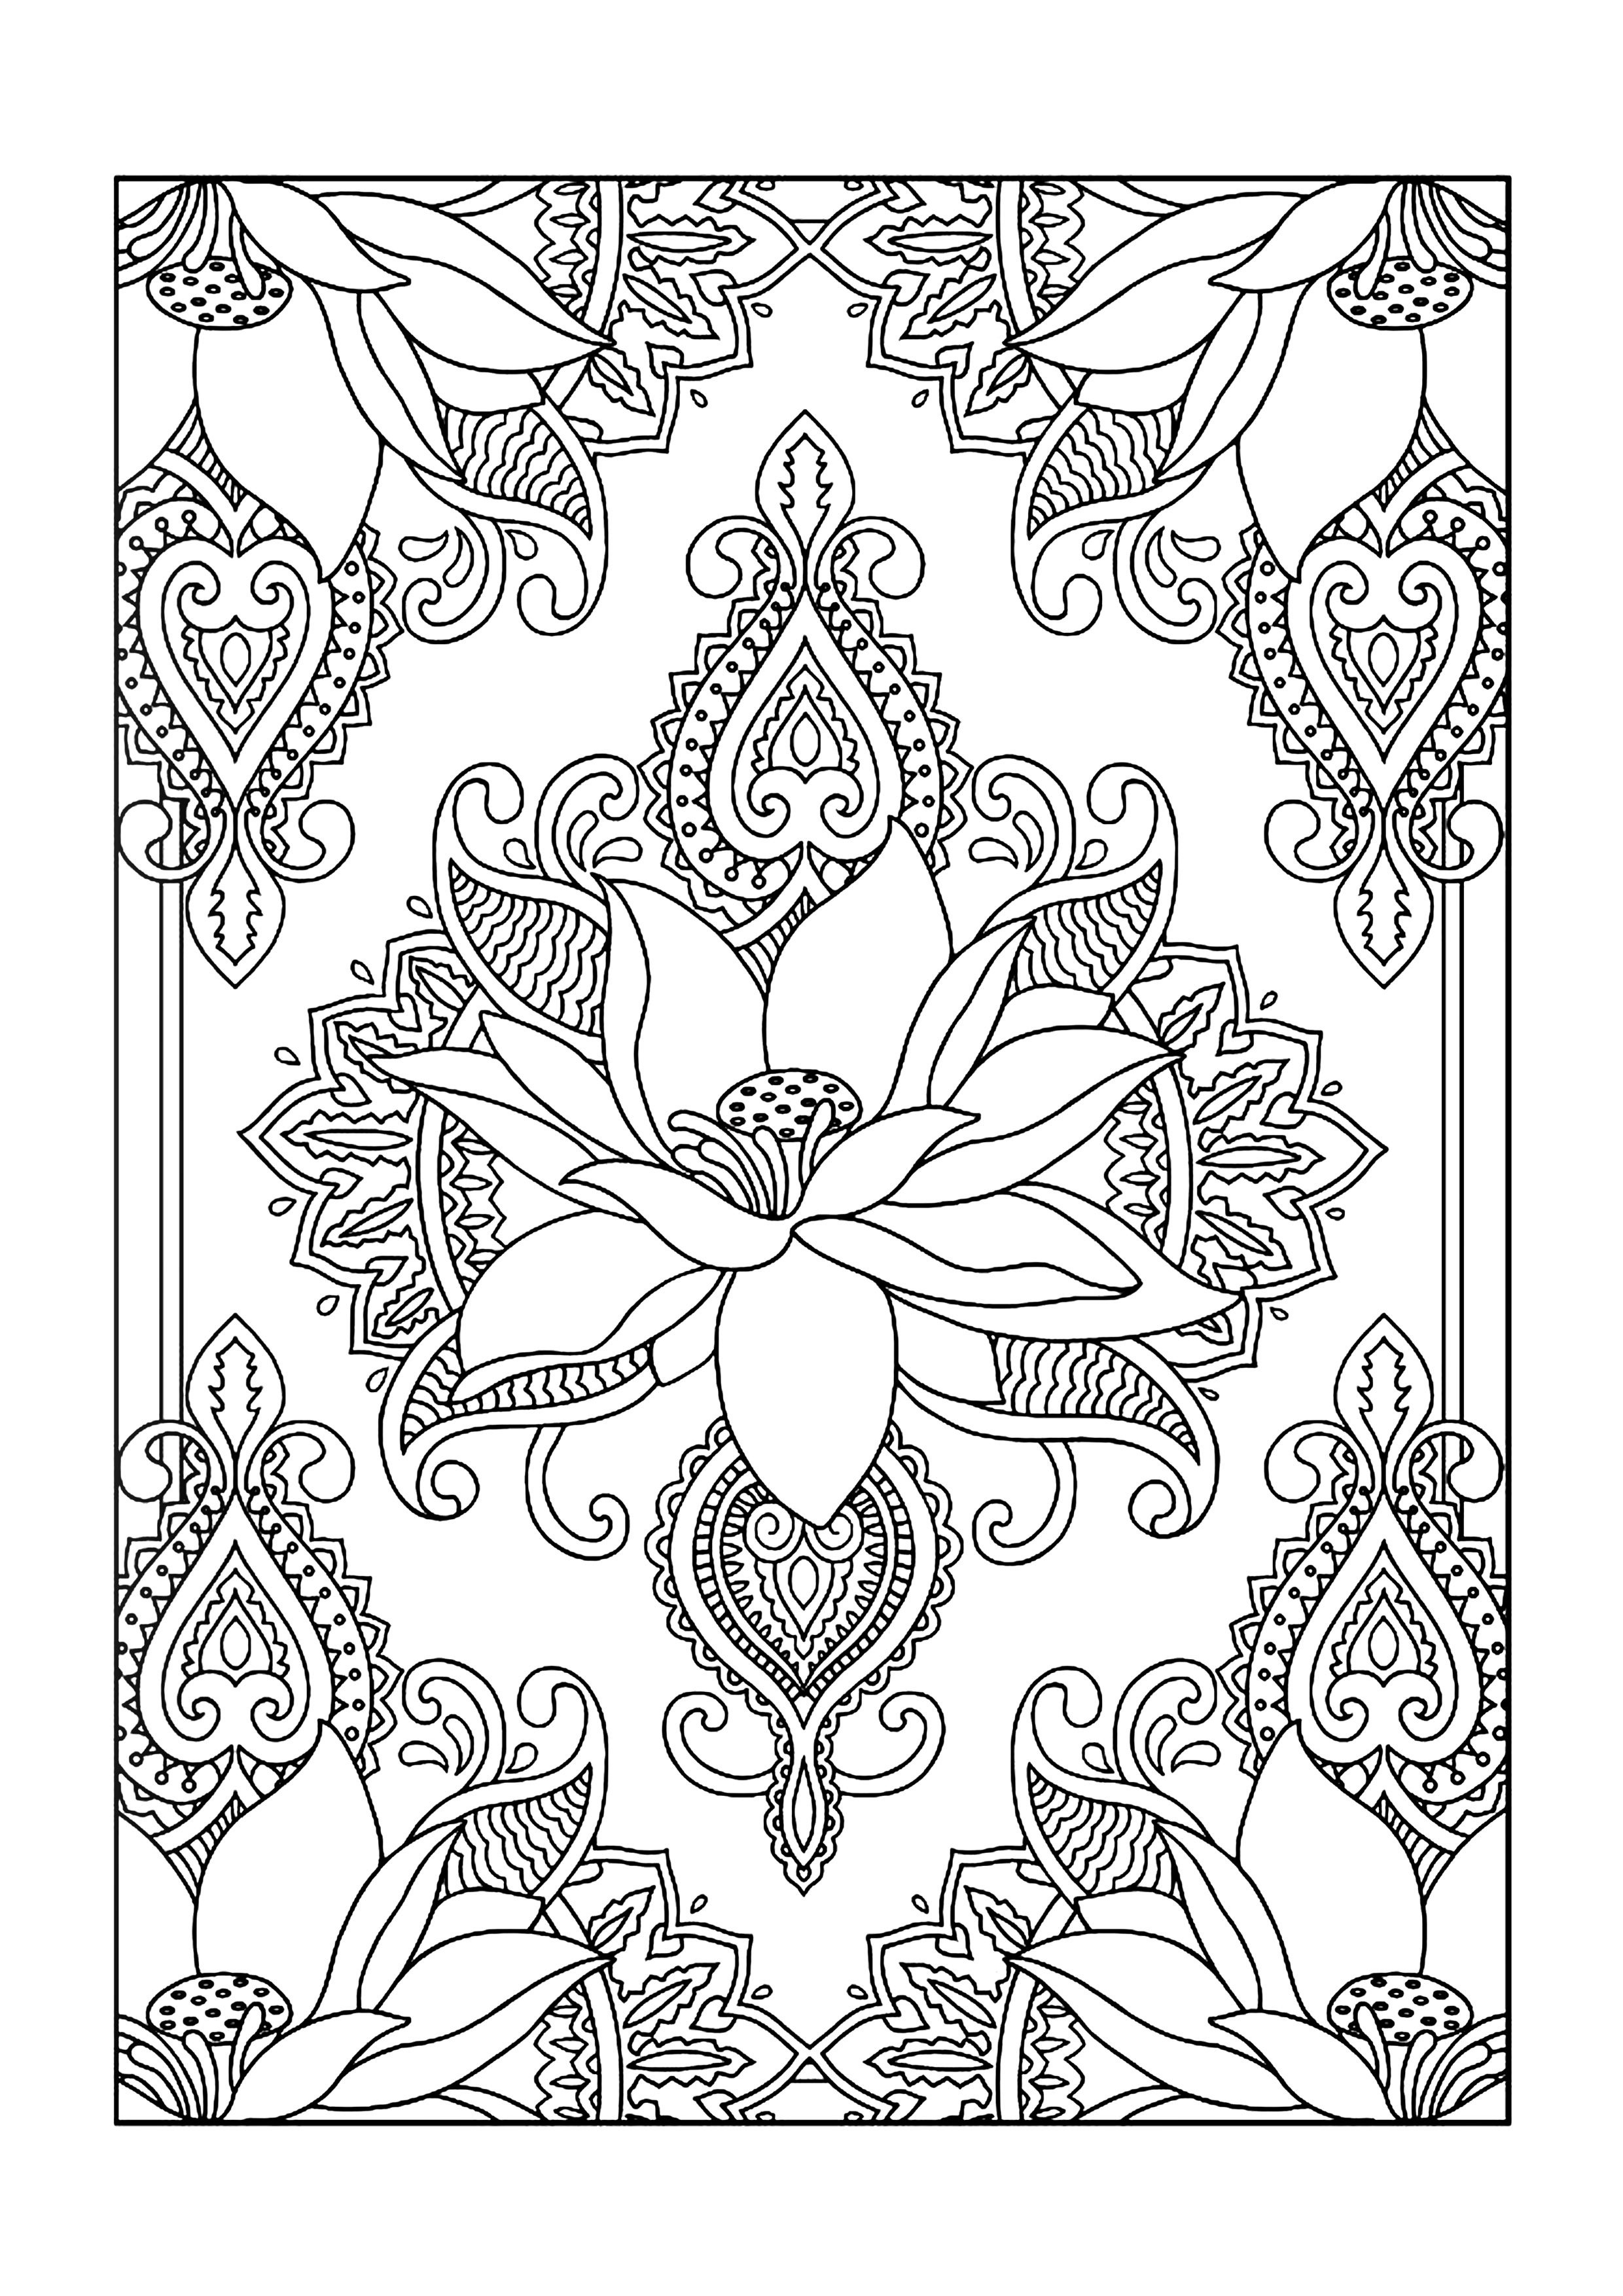 Colouring Books - Free Printable A4 Size - Lotus Flower // Imagenes - Free Printable Coloring Designs For Adults